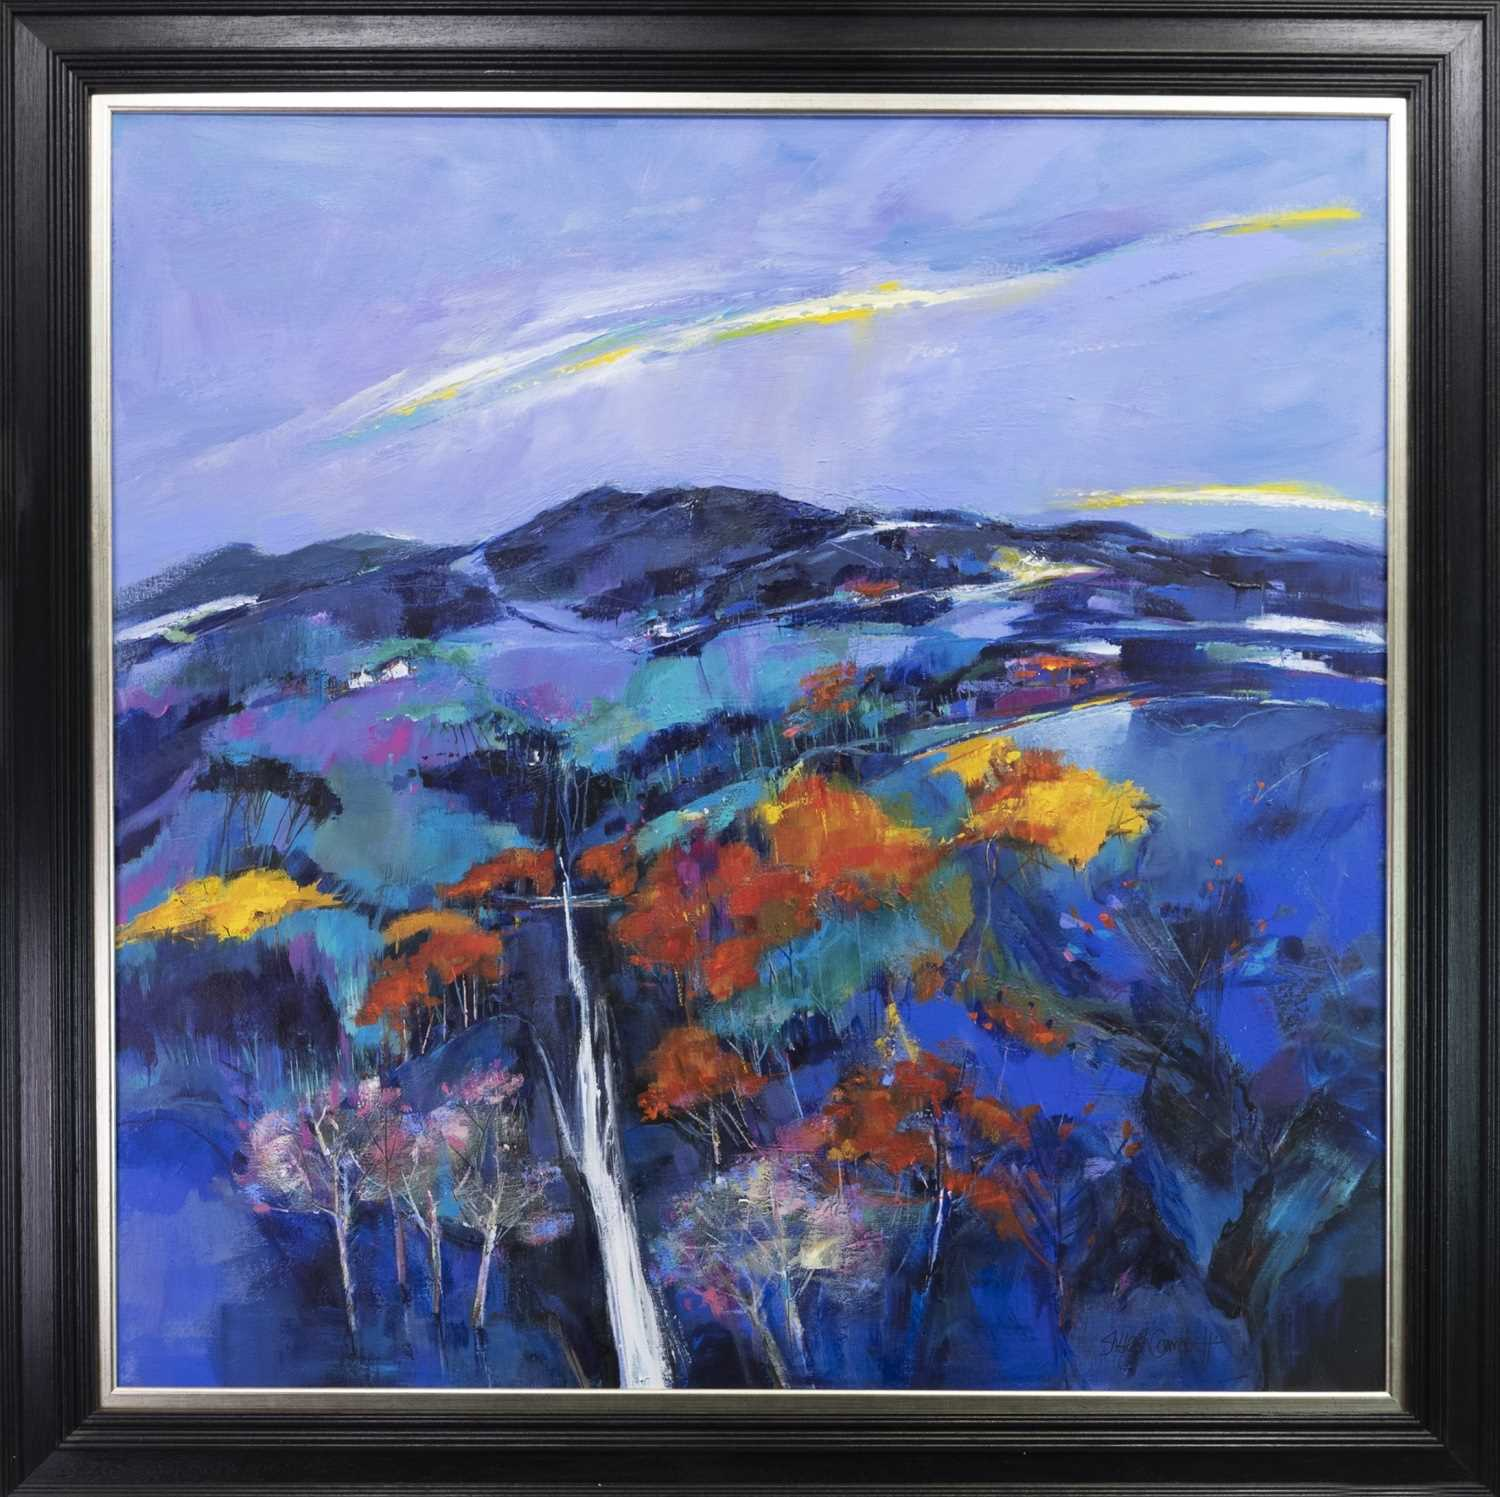 Lot 741 - THE FALLS OF MEASACH, AN ACRYLIC BY SHELAGH CAMPBELL